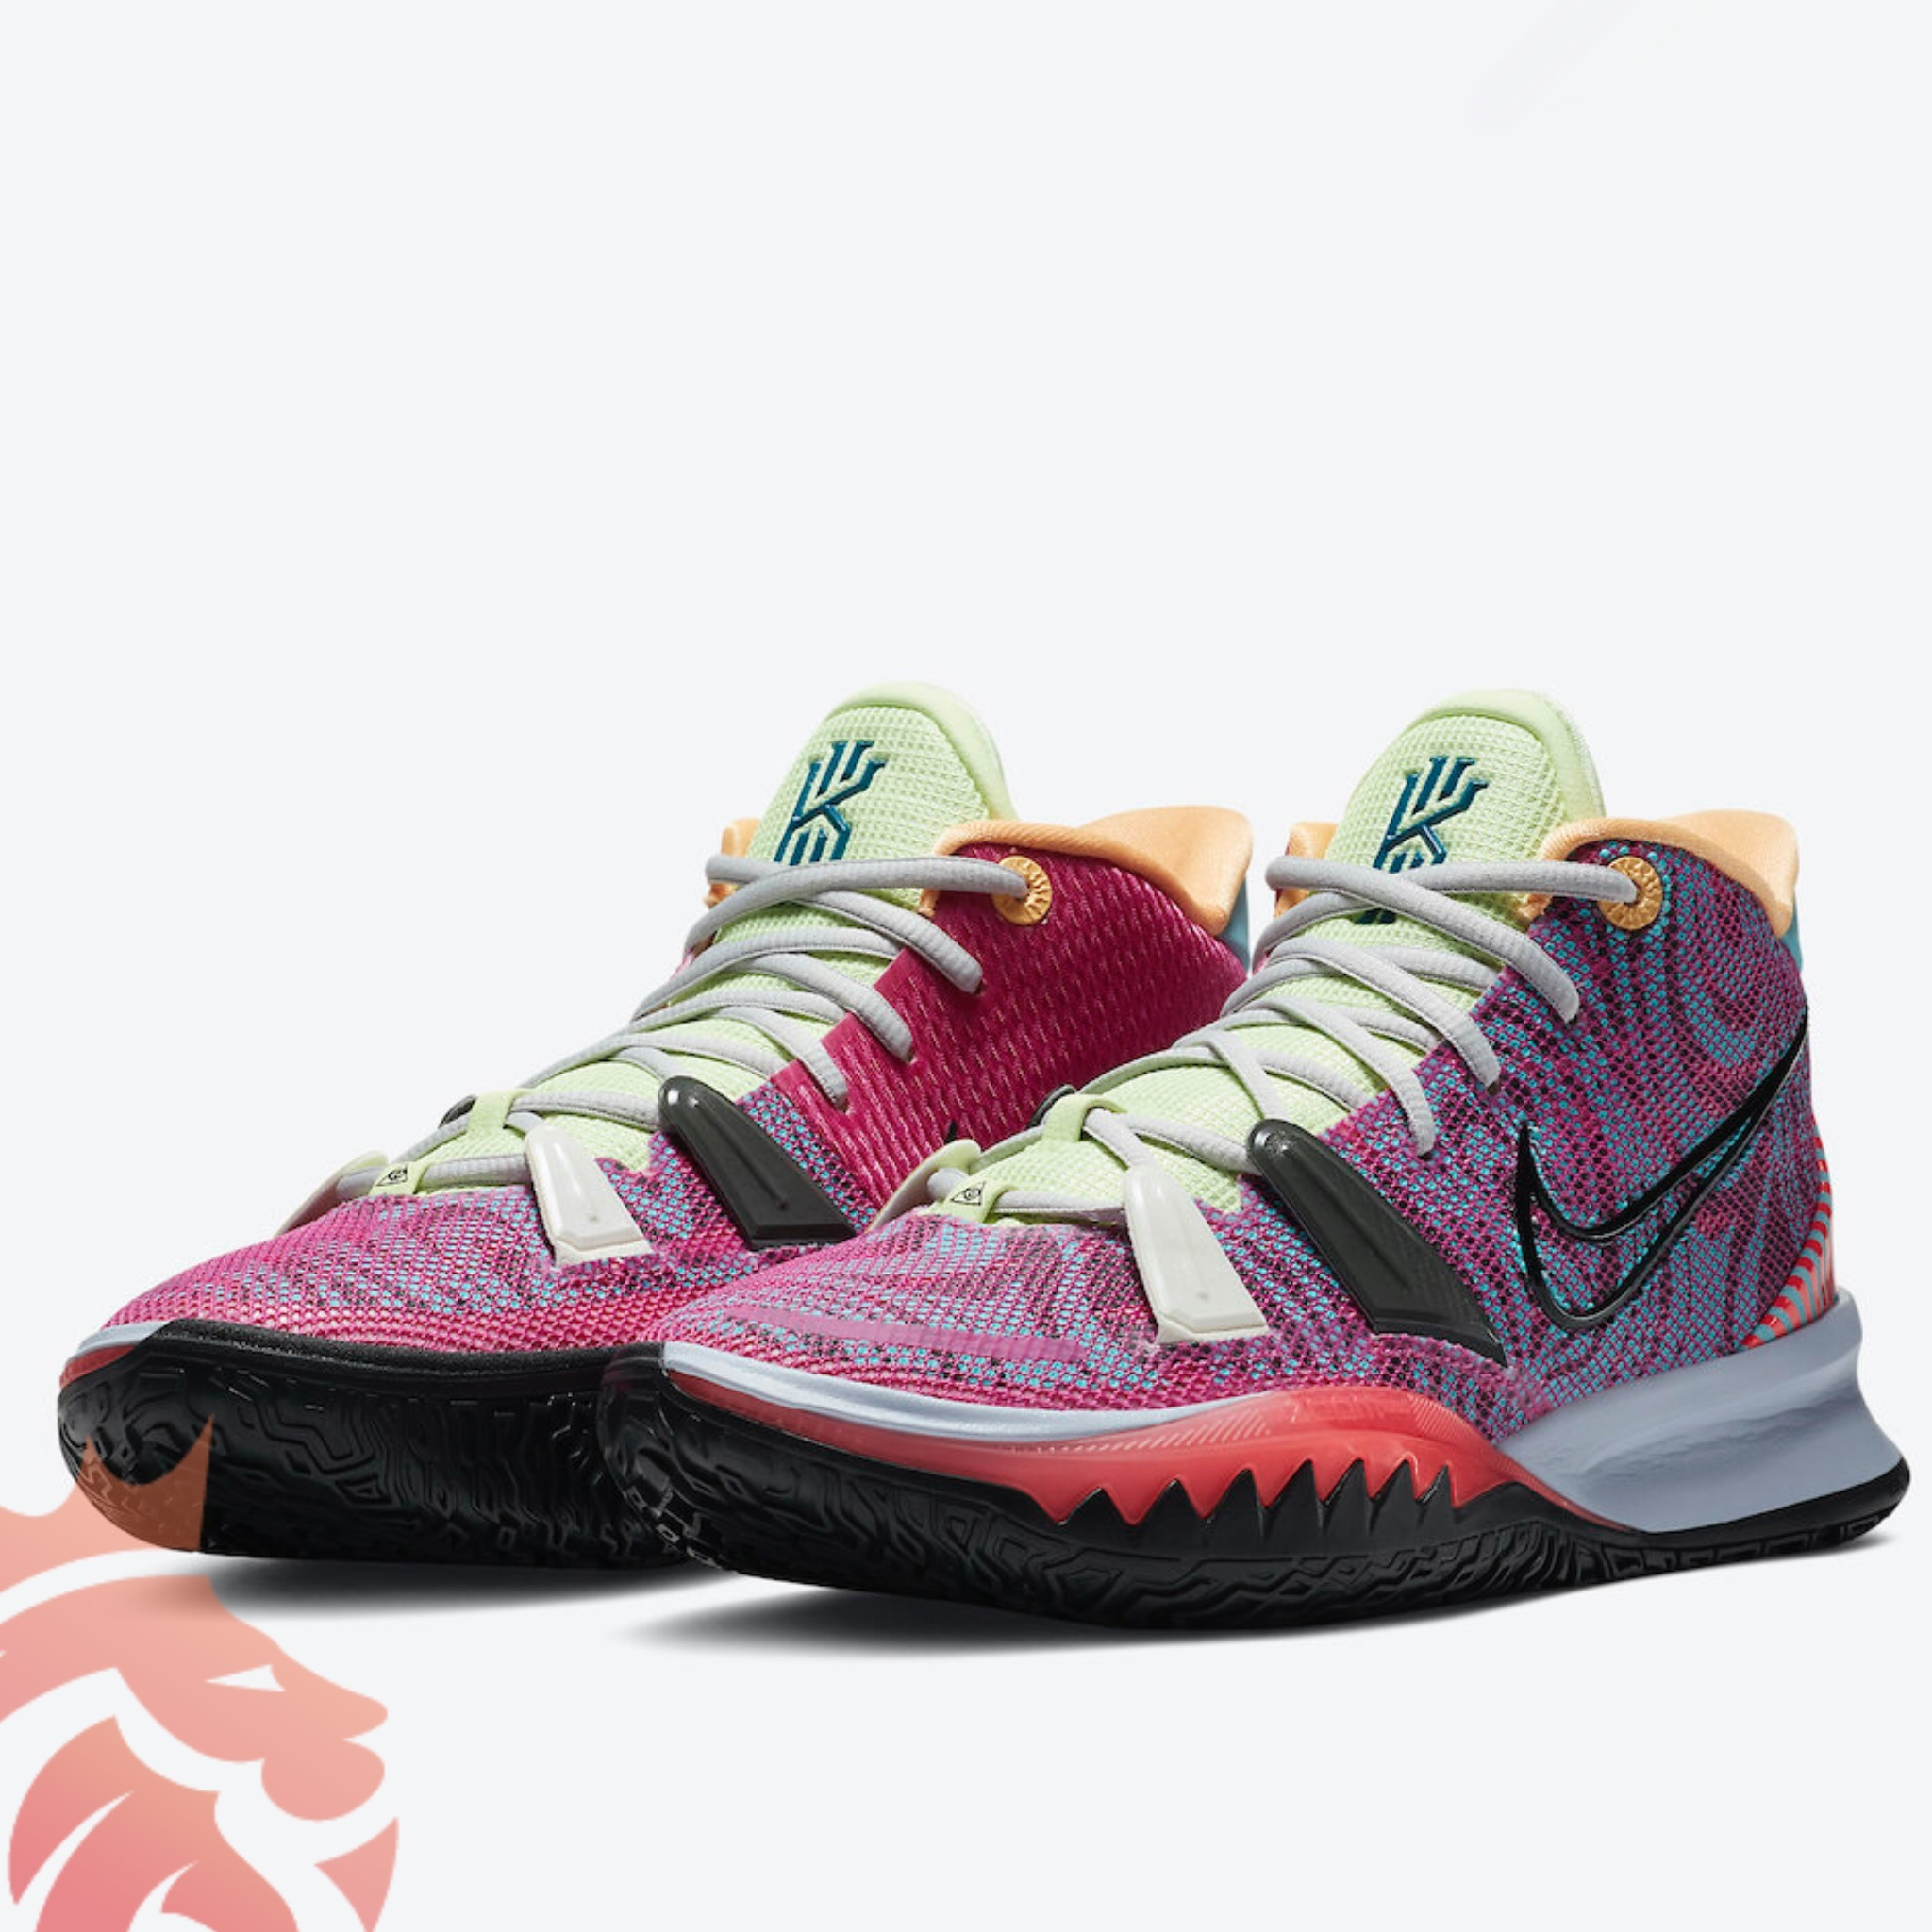 Nike Kyrie 7 Hendrix DC0589-601 Active Fuchsia/Black-Ghost-Multi-Color